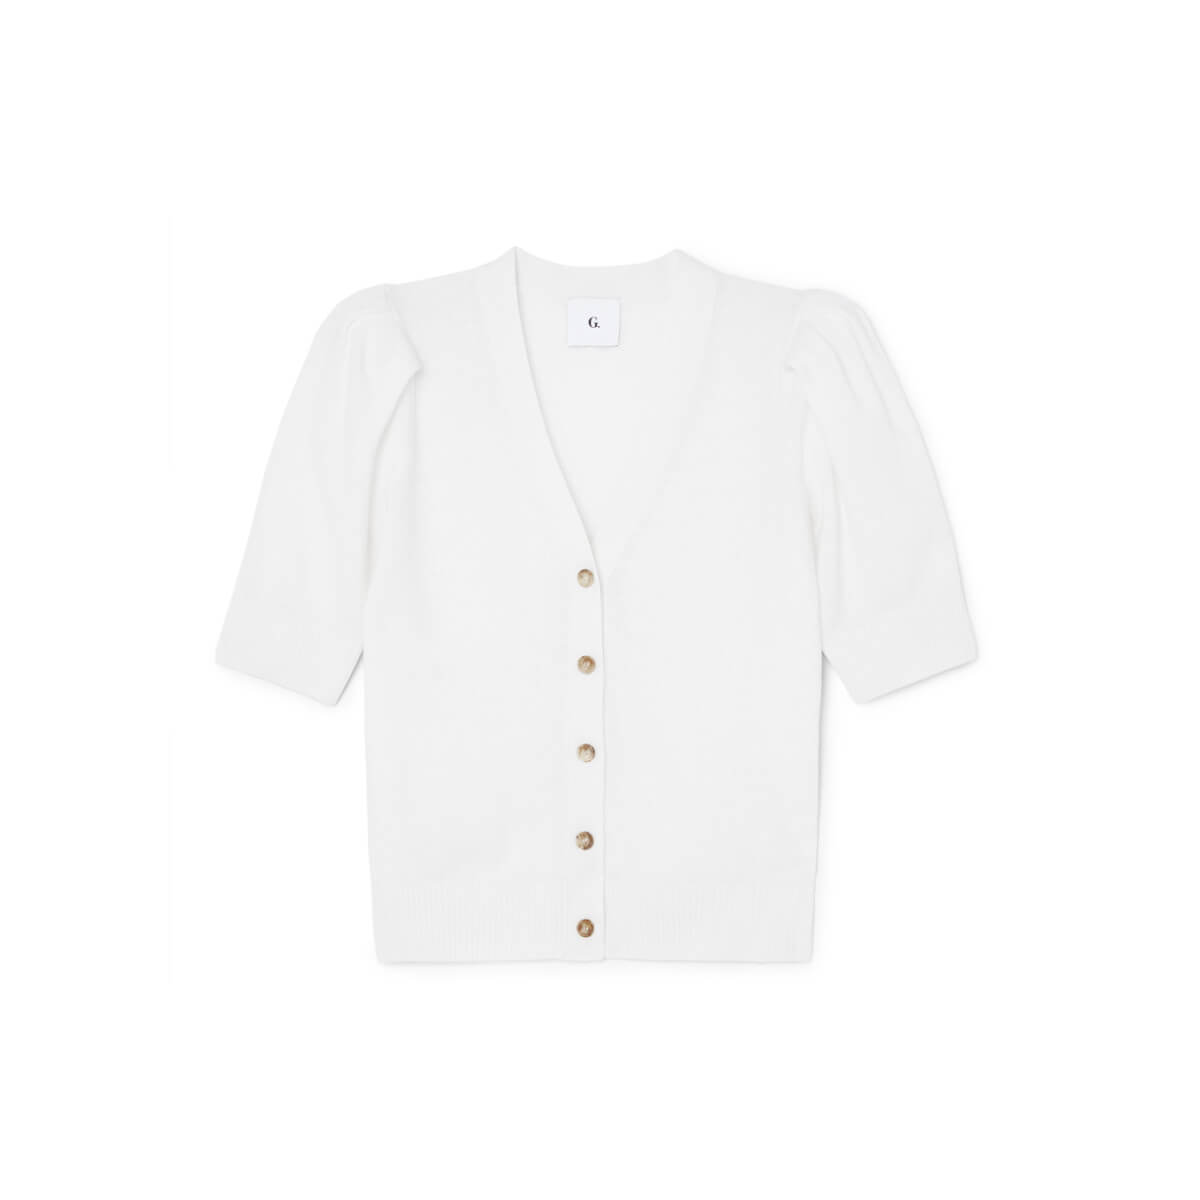 G. Label juliette short-sleeve cardigan